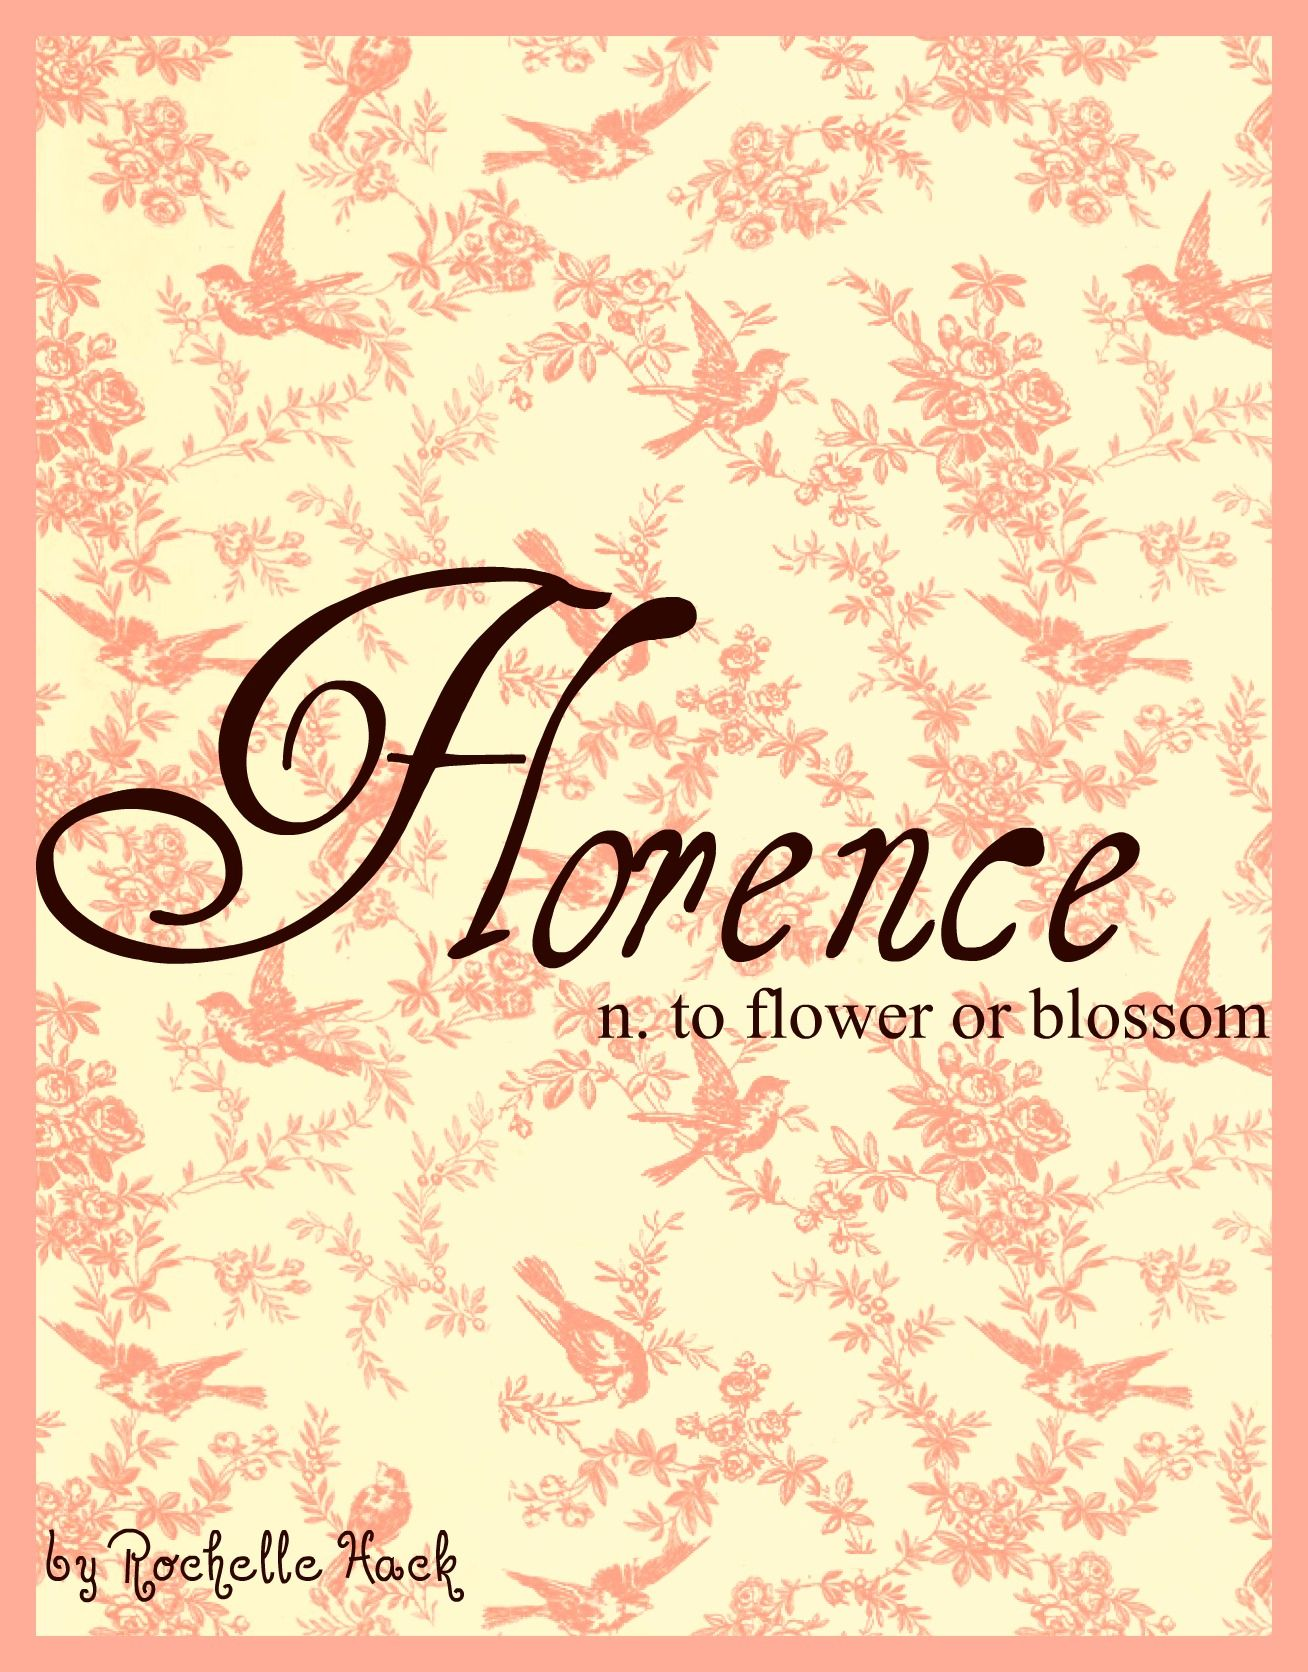 Baby Girl Name Florence. Meaning To Flower or Blossom